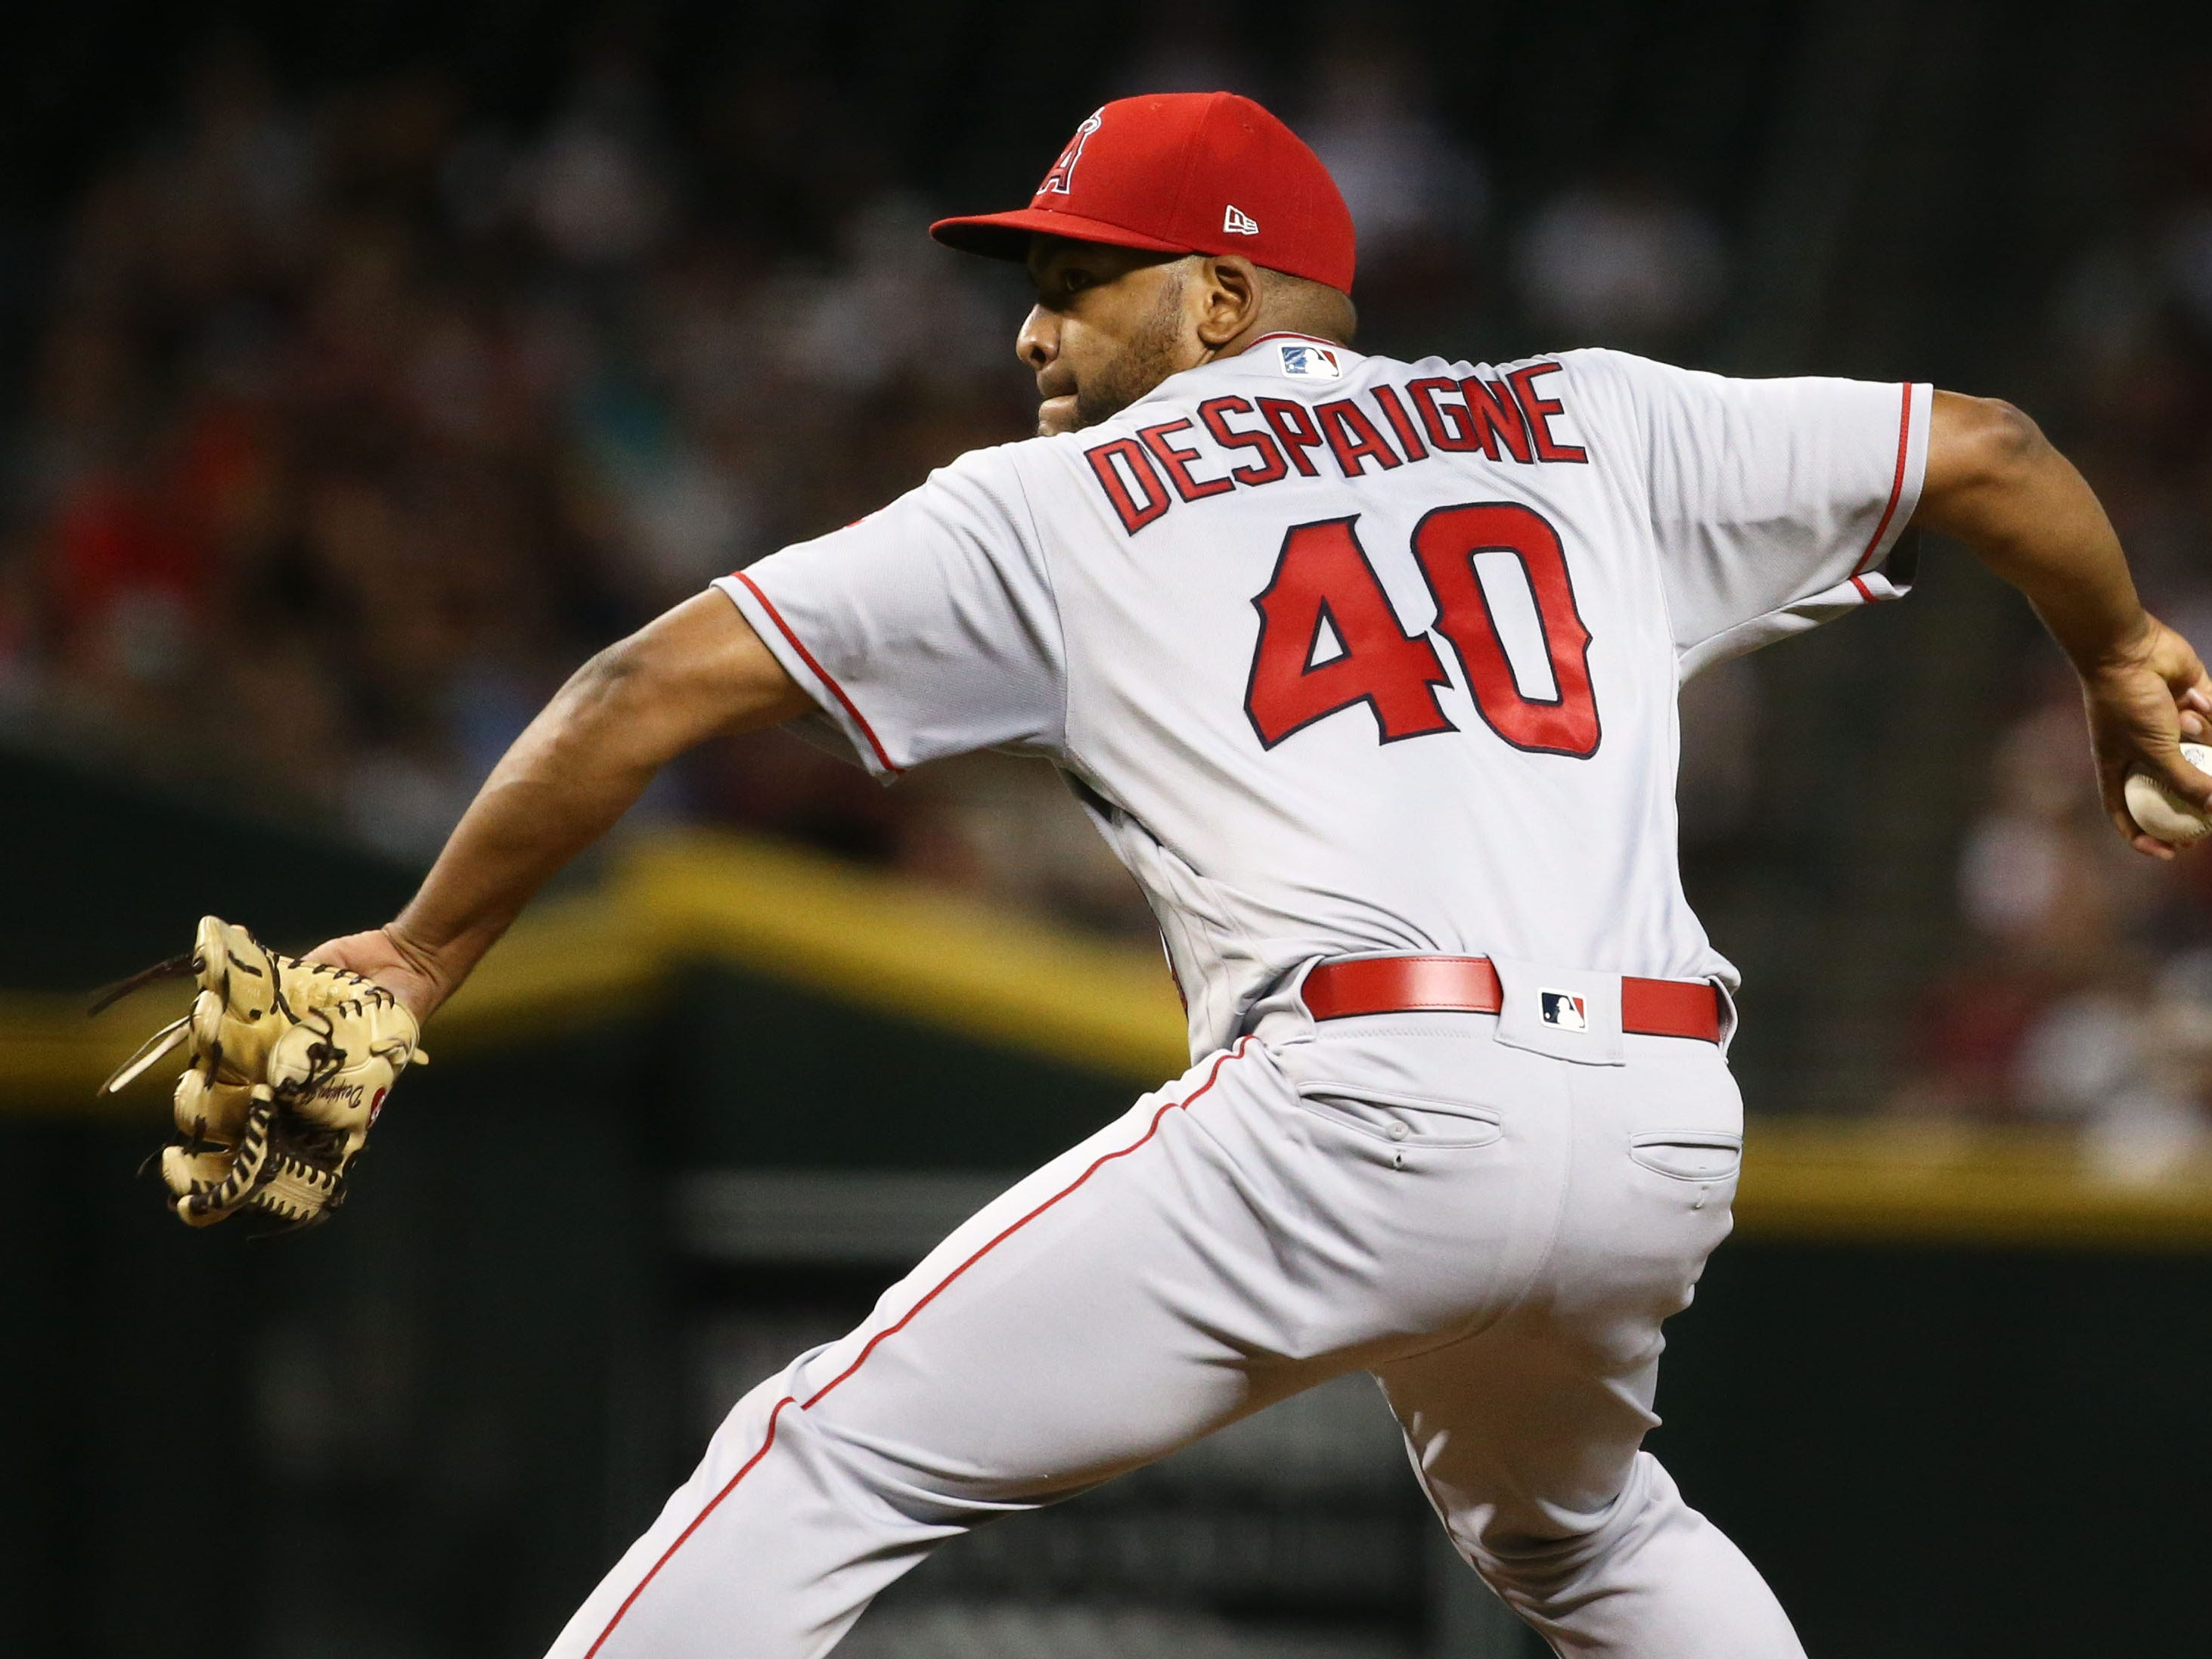 Los Angeles Angels pitcher Odrisamer Despaigne throws to the Arizona Diamondbacks in the first inning on Aug. 22, 2018, at Chase Field in Phoenix, Ariz.